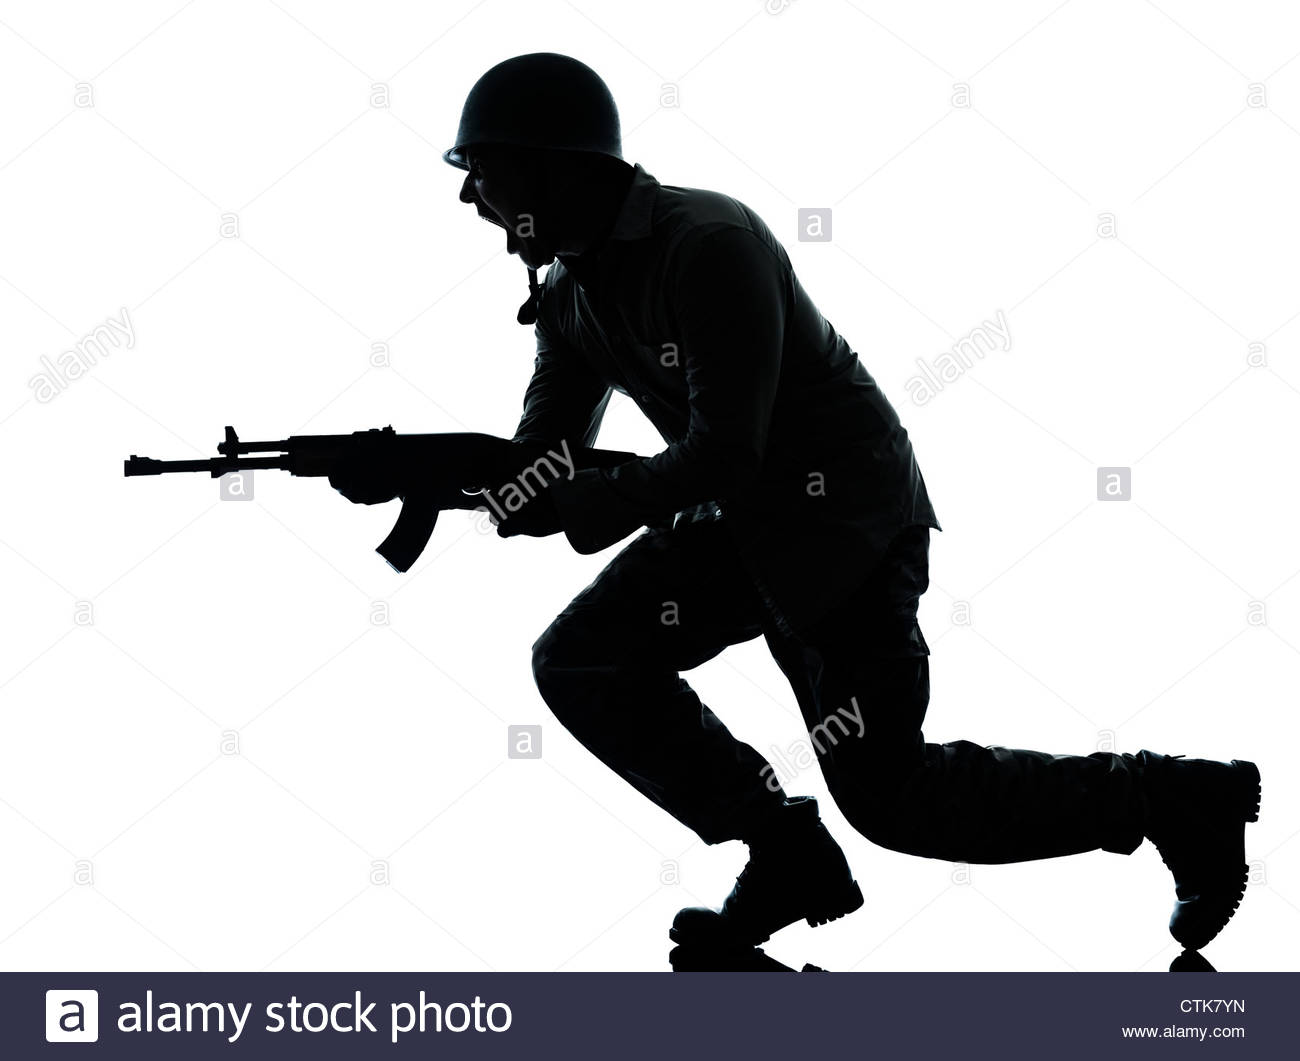 1300x1061 Soldier Silhouette Stock Photos Amp Soldier Silhouette Stock Images